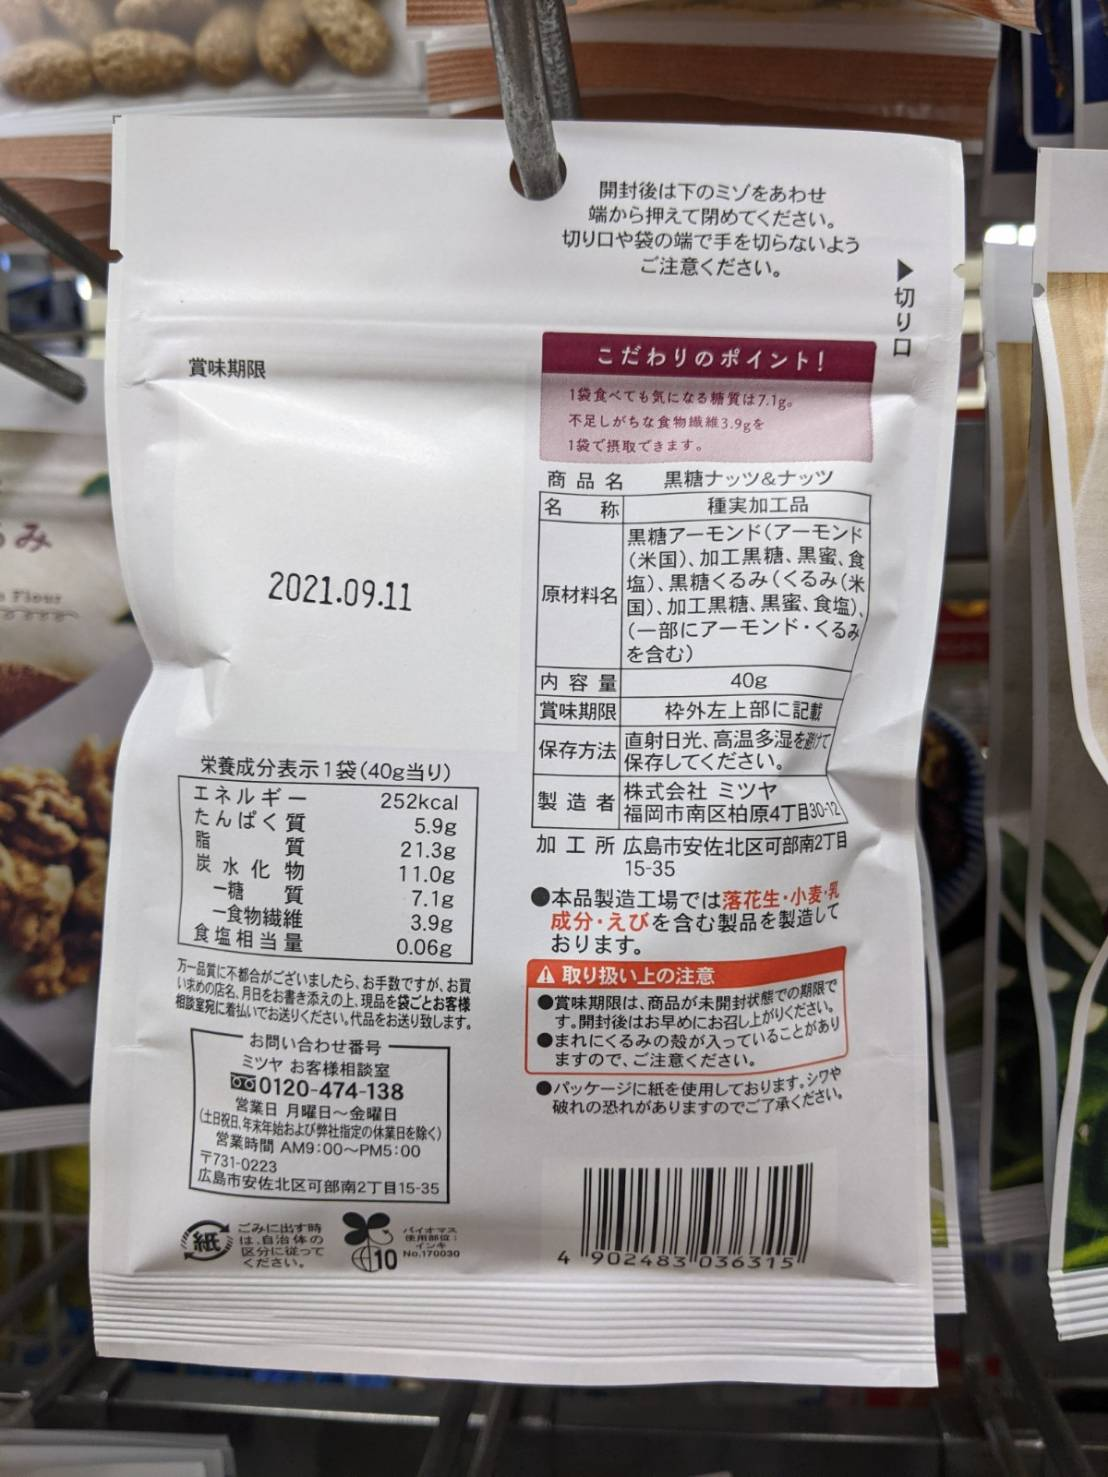 Lawson Raw Sugar Taste Mixed Nuts back of package